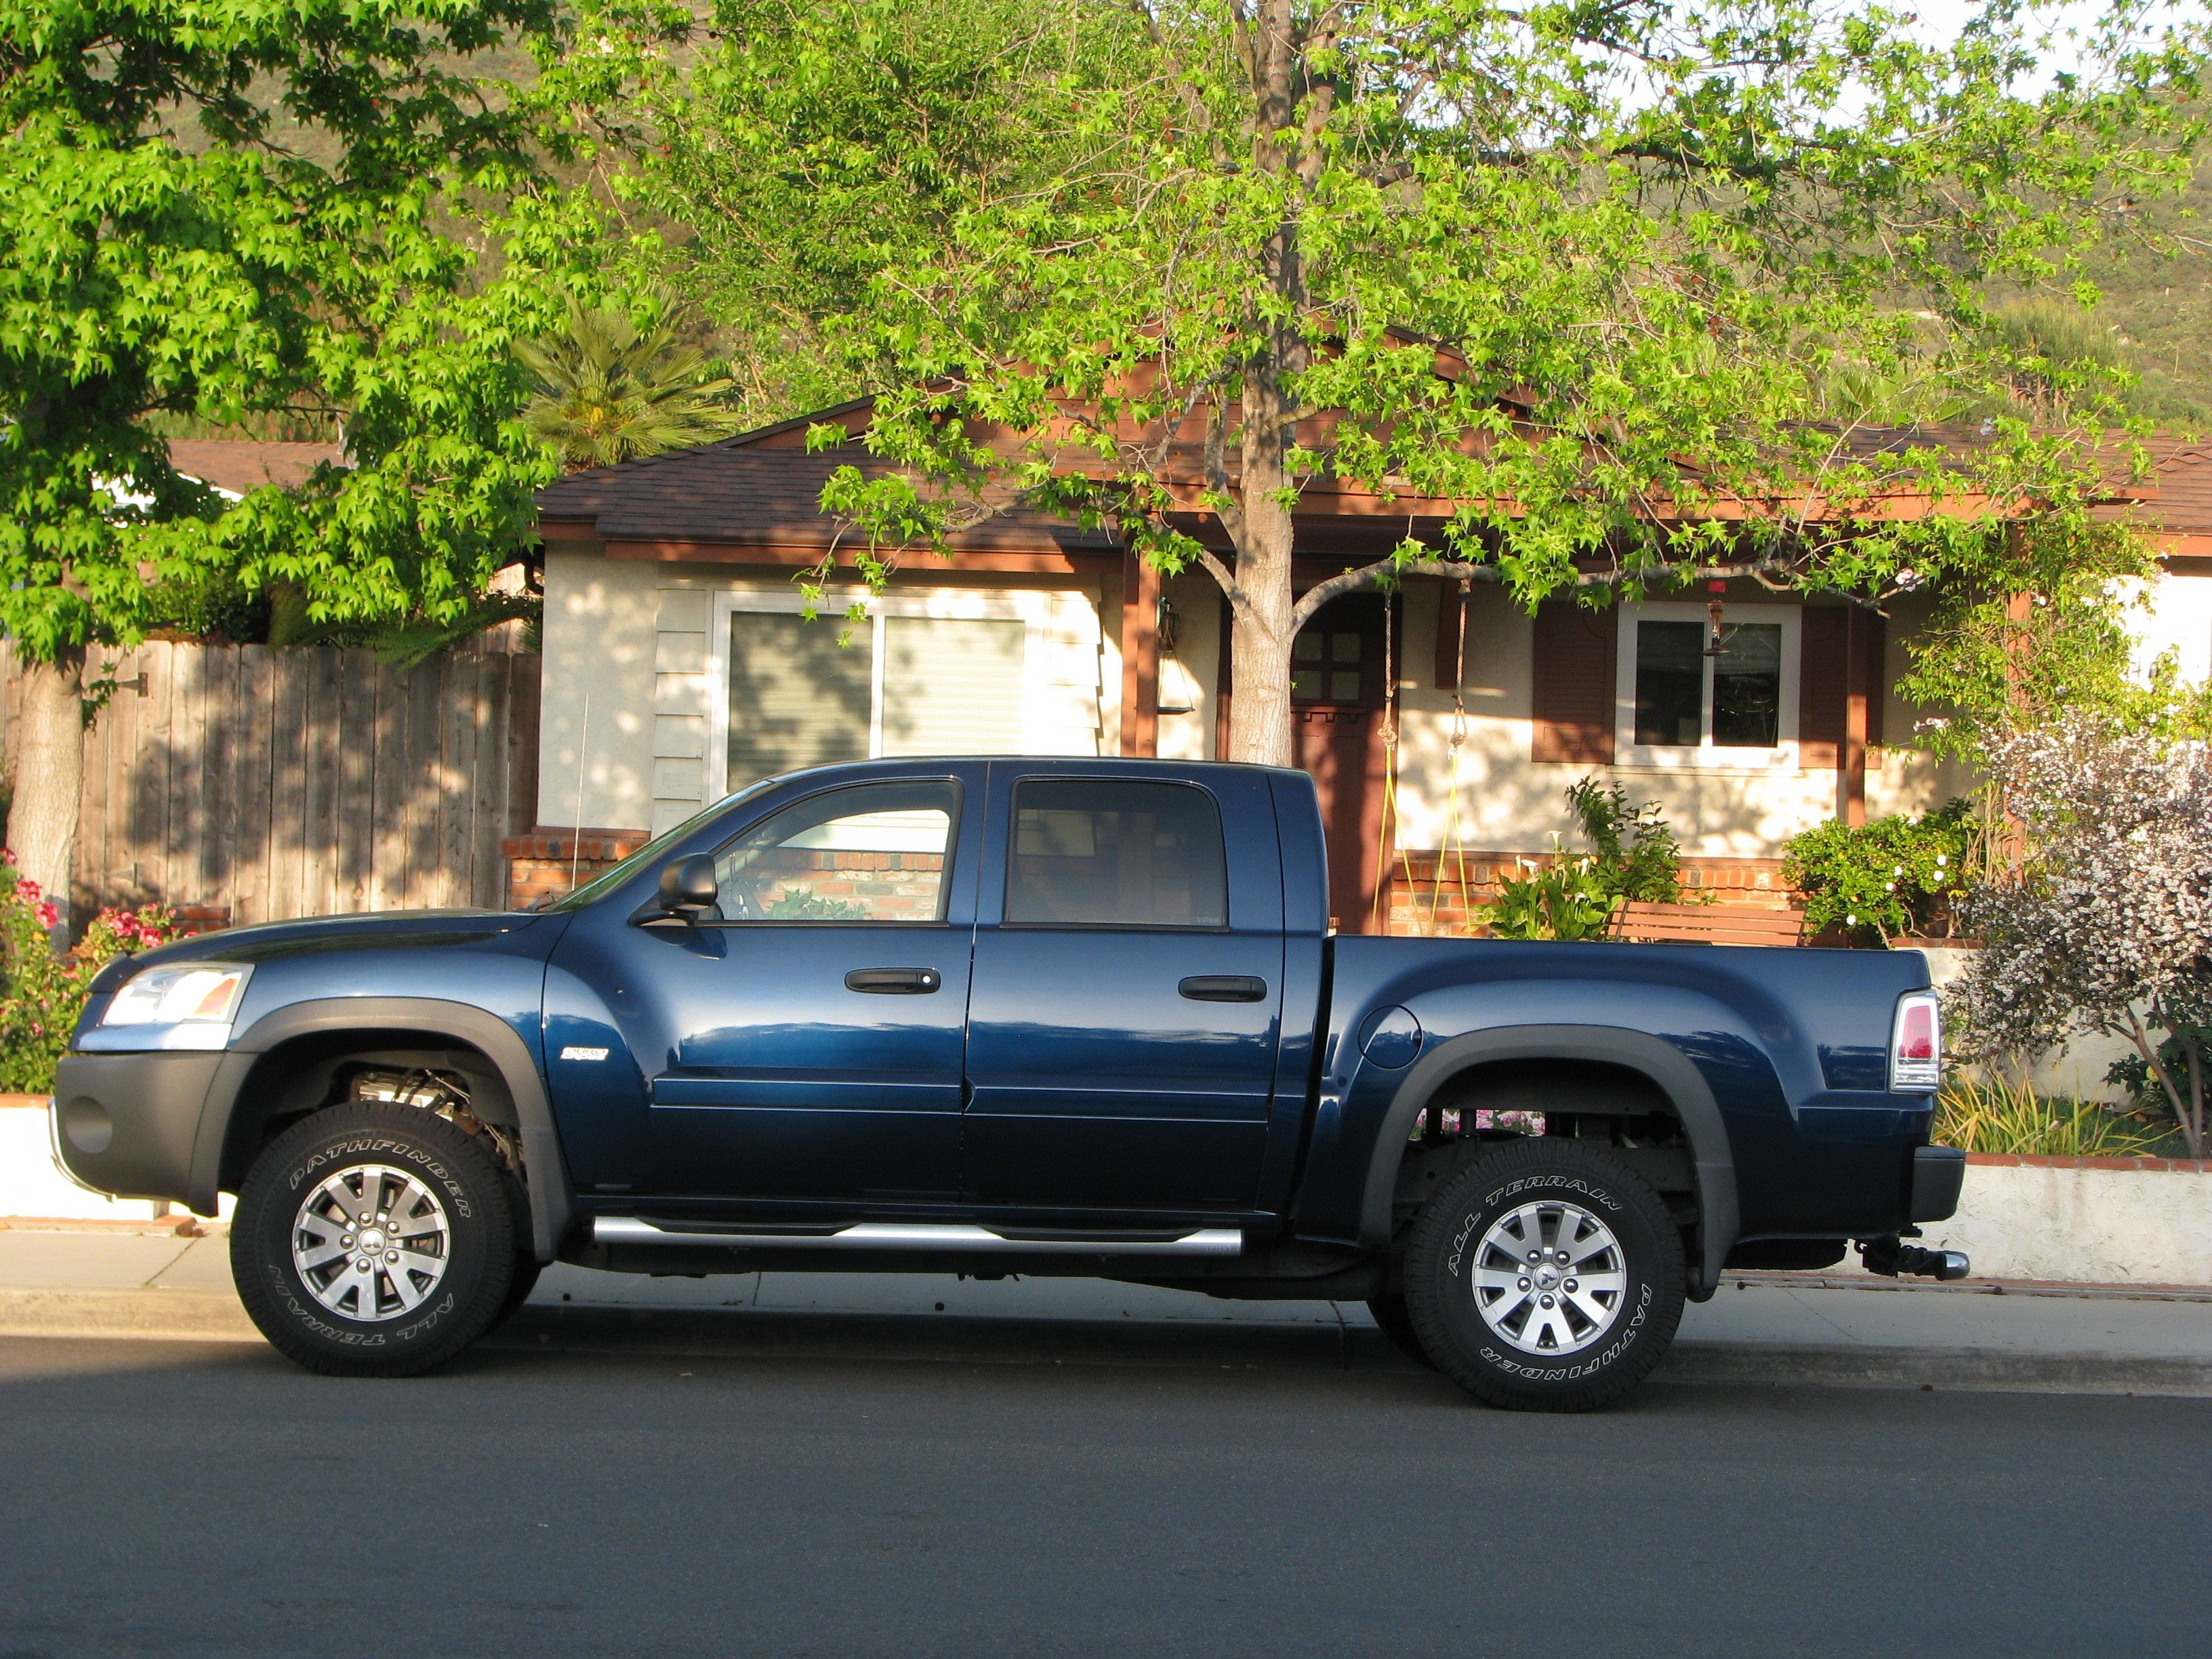 The muscular mitsubishi raider extended cab